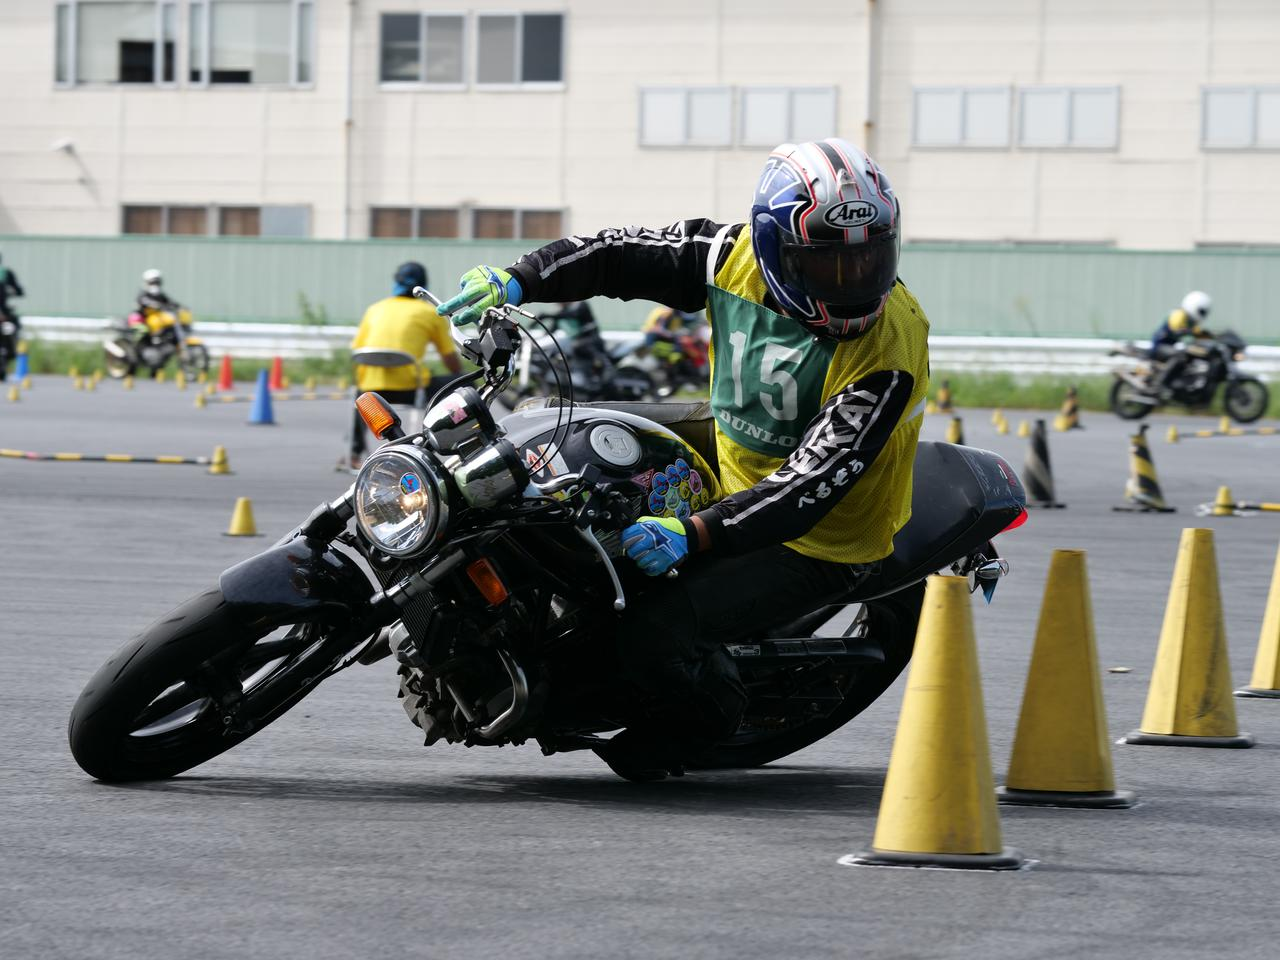 Images : 48番目の画像 - ジムカーナで活躍するホンダ「VTR」をもっと見る! - LAWRENCE - Motorcycle x Cars + α = Your Life.